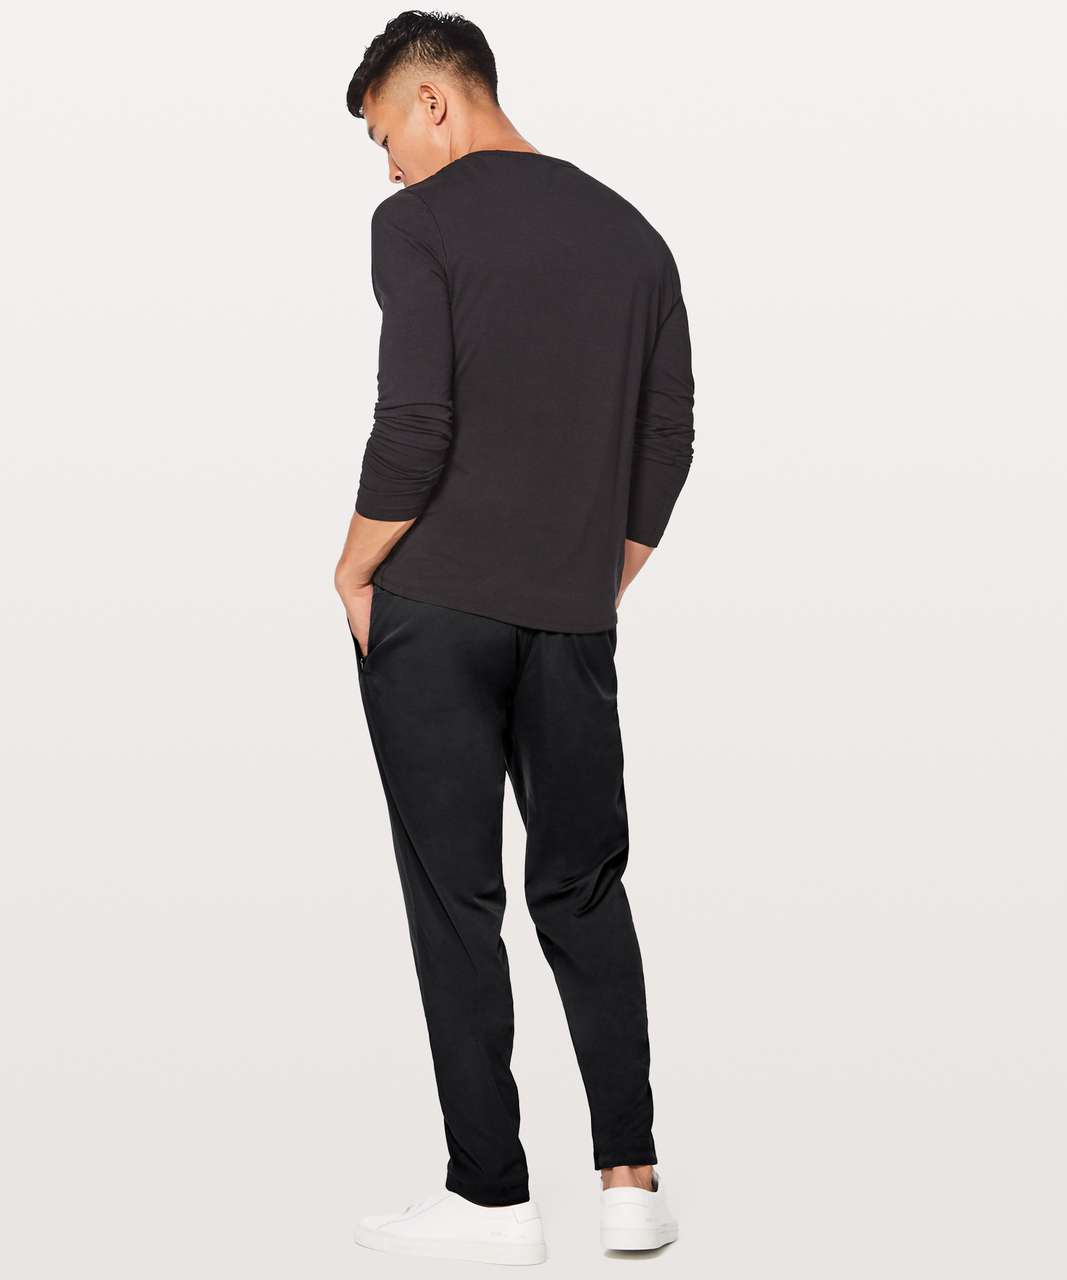 88ed6435bd3d57 Lululemon Great Wall Pant *Lined 32